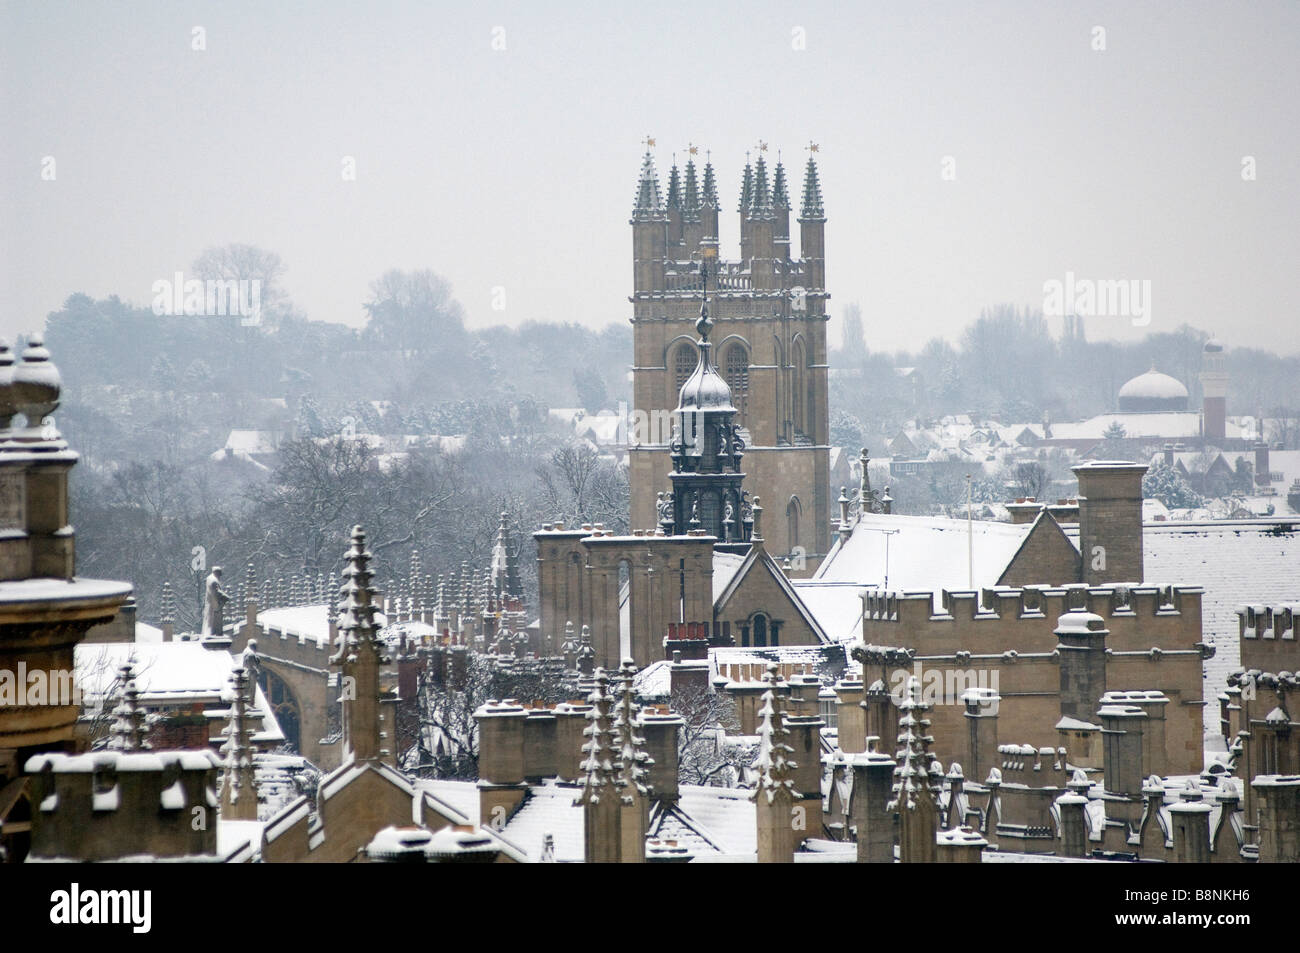 Looking across the rooves of Oxford Colleges towards Magdalen College Tower in snow and winter - Stock Image